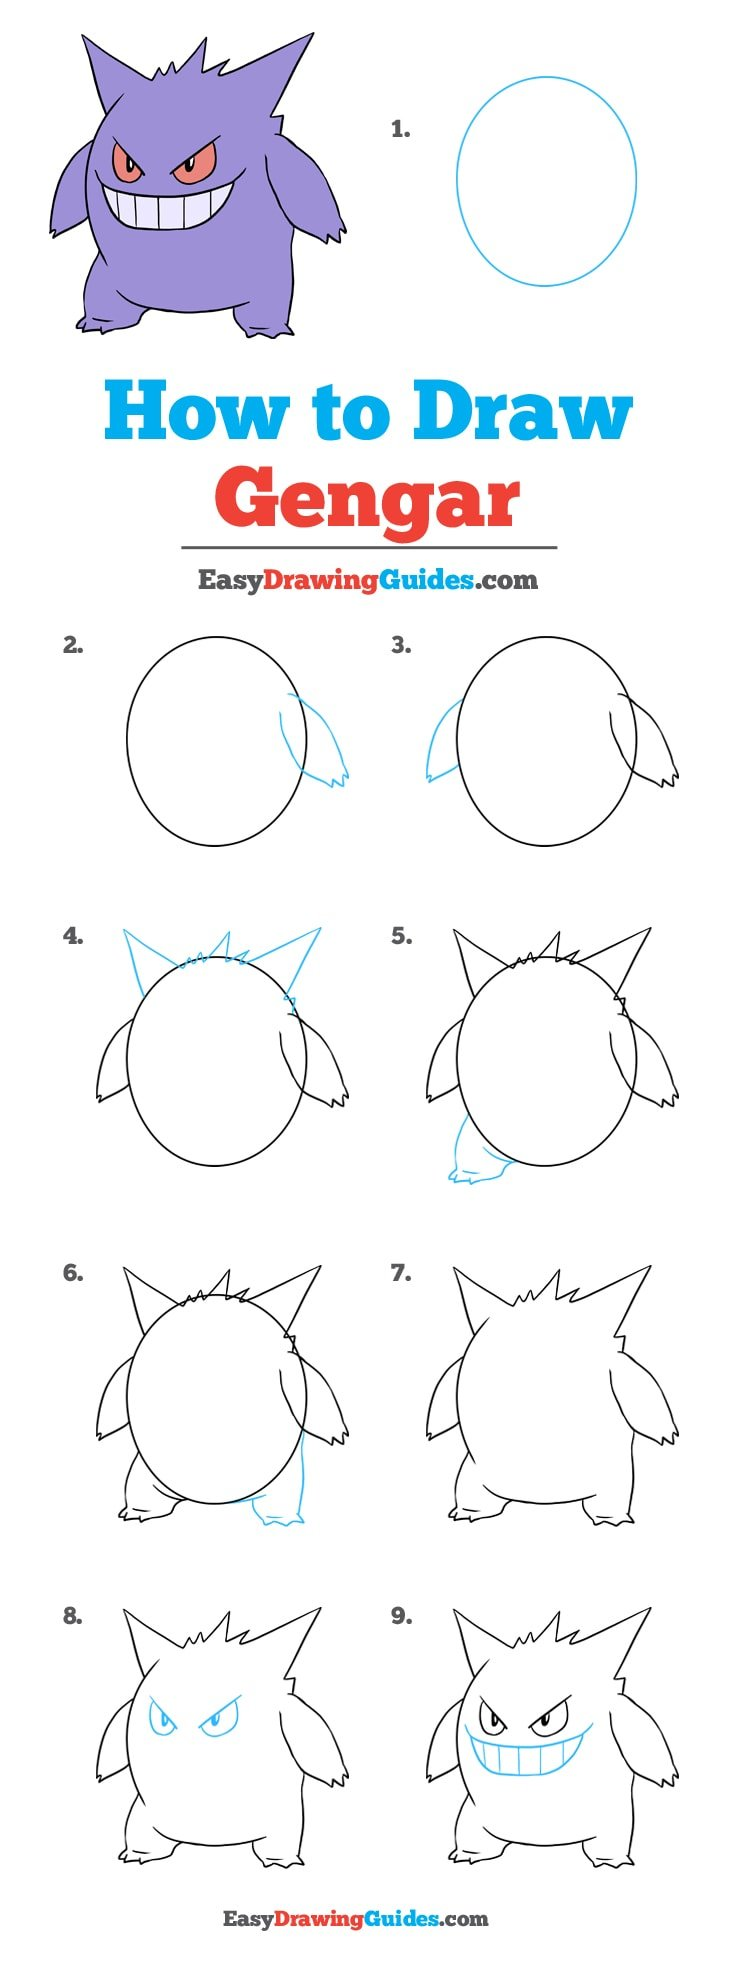 How to Draw Gengar